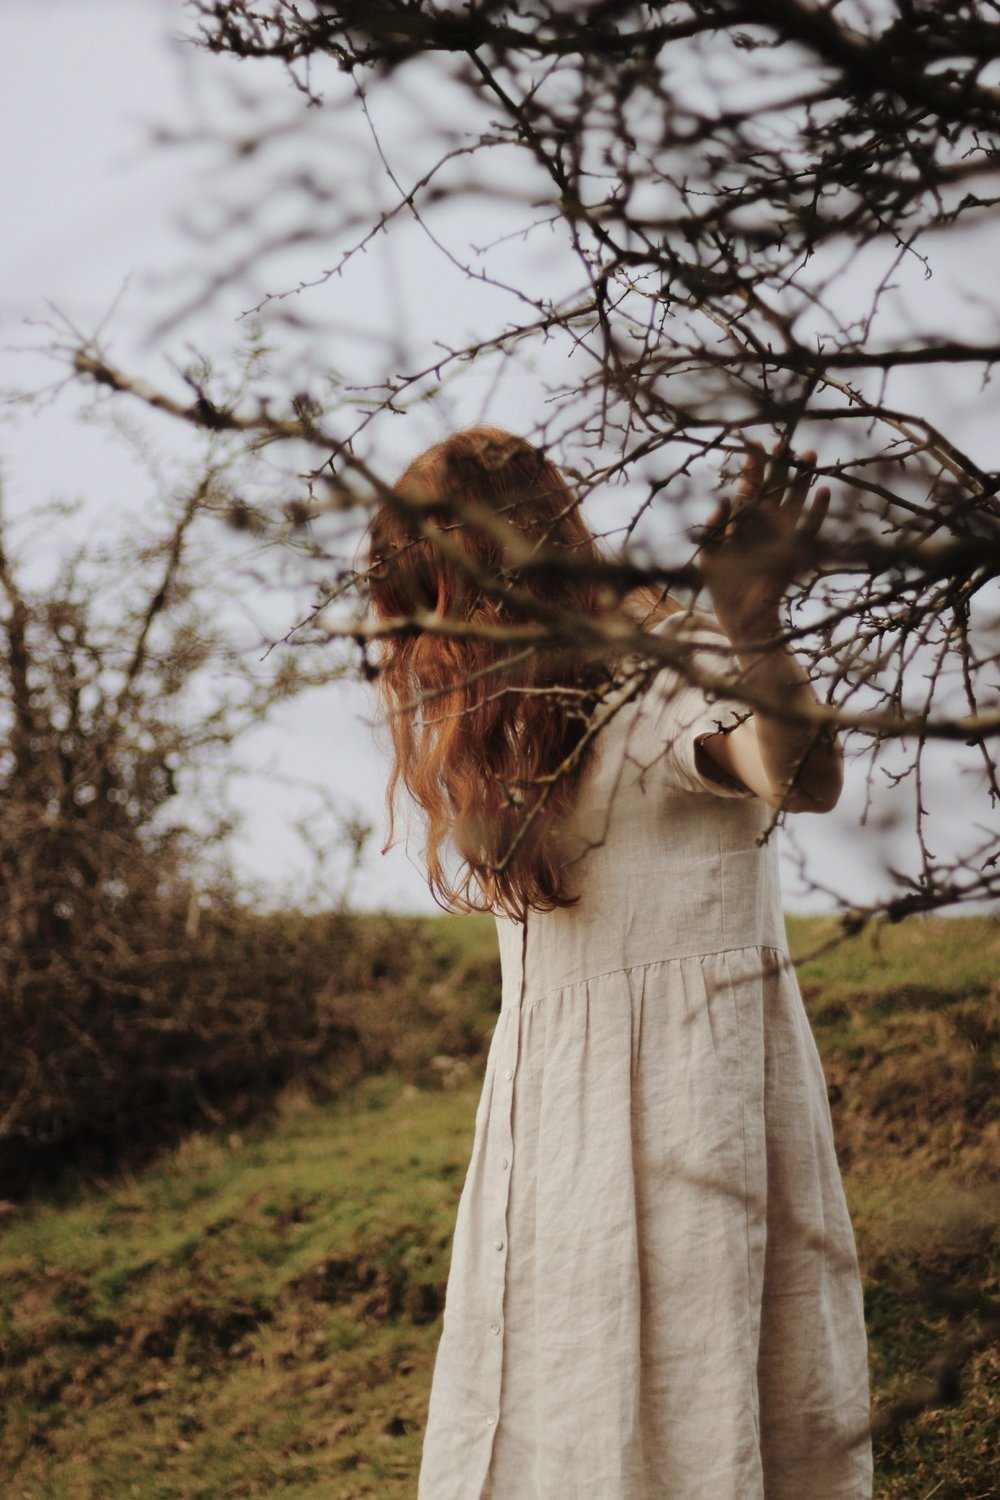 Girl in the countryside wearing a linen dress with red hair